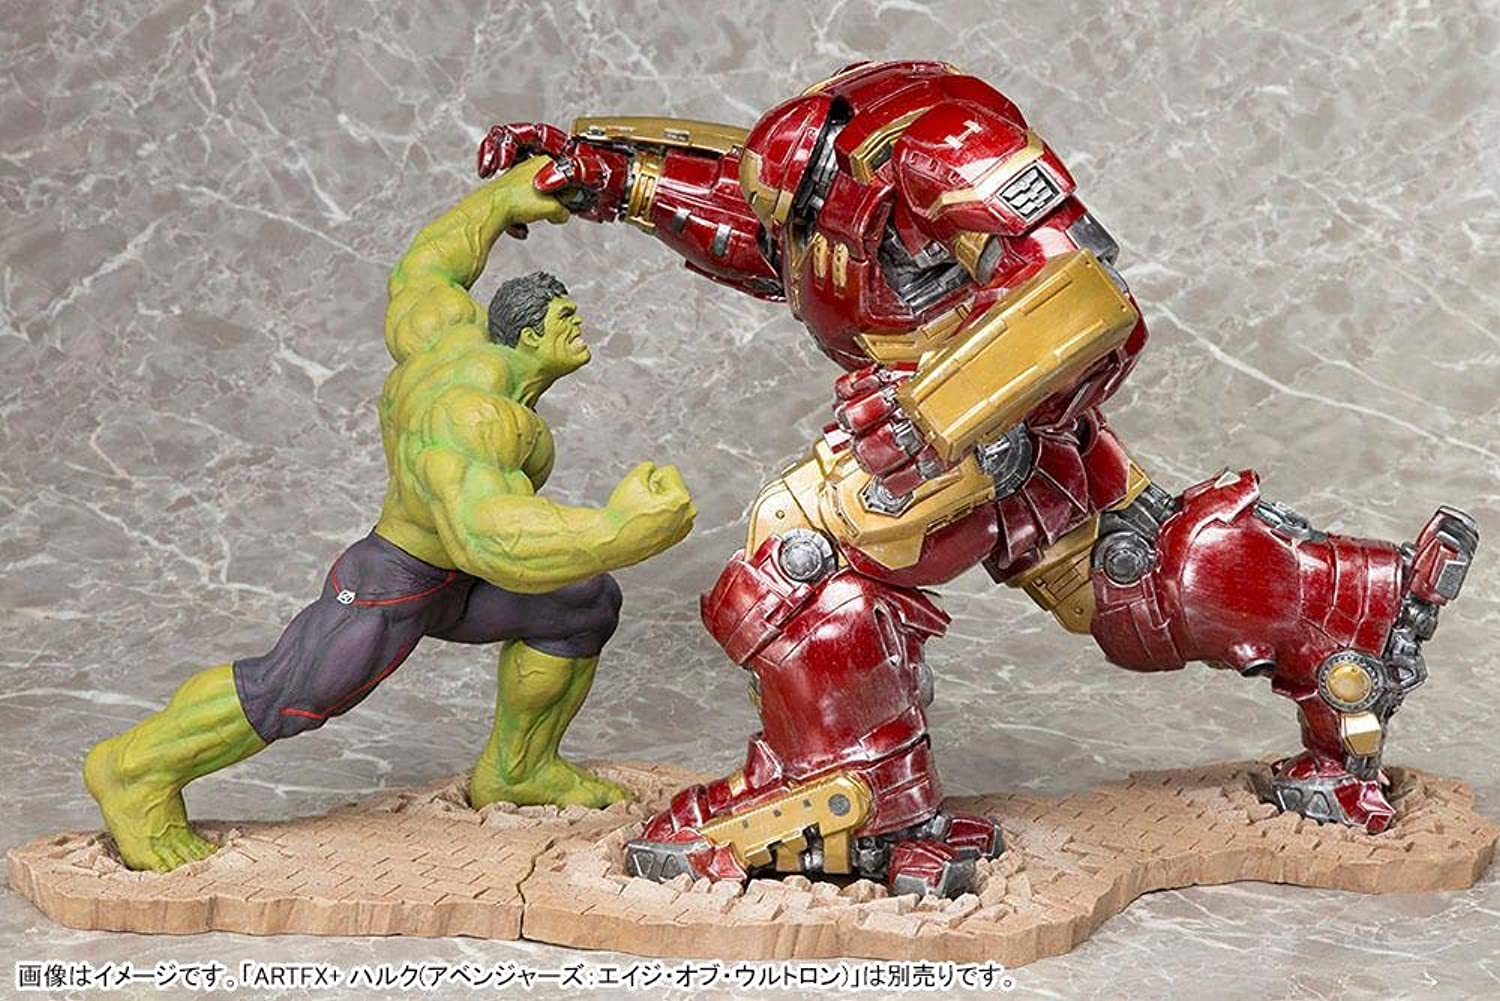 JAPAN OFFICIAL Iron Man Hulkbuster The Incrotible Hulk Statue Marvel Avengers Figure  1